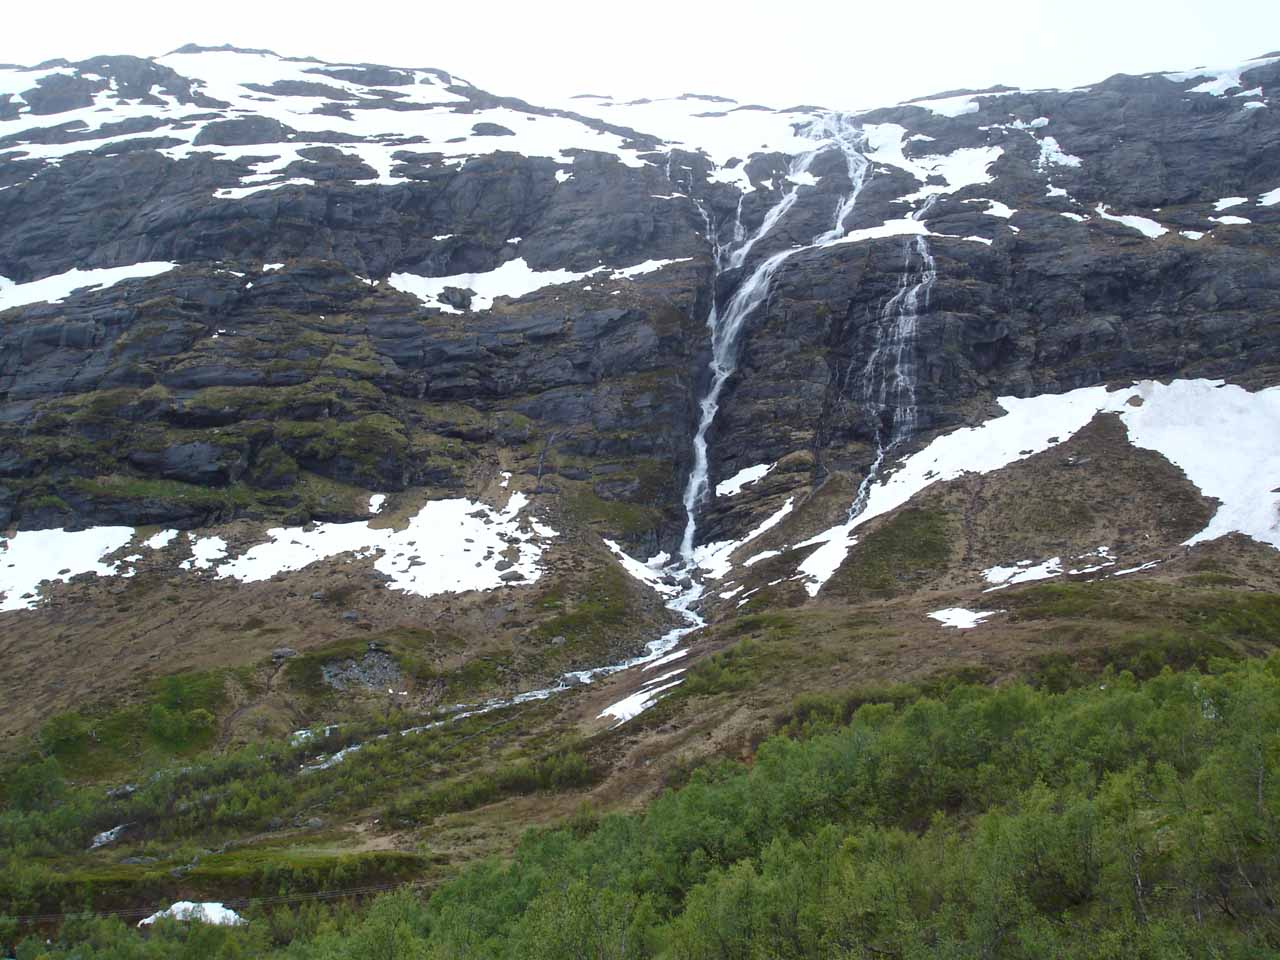 An attractively tall waterfall near the Røldal Tunnel